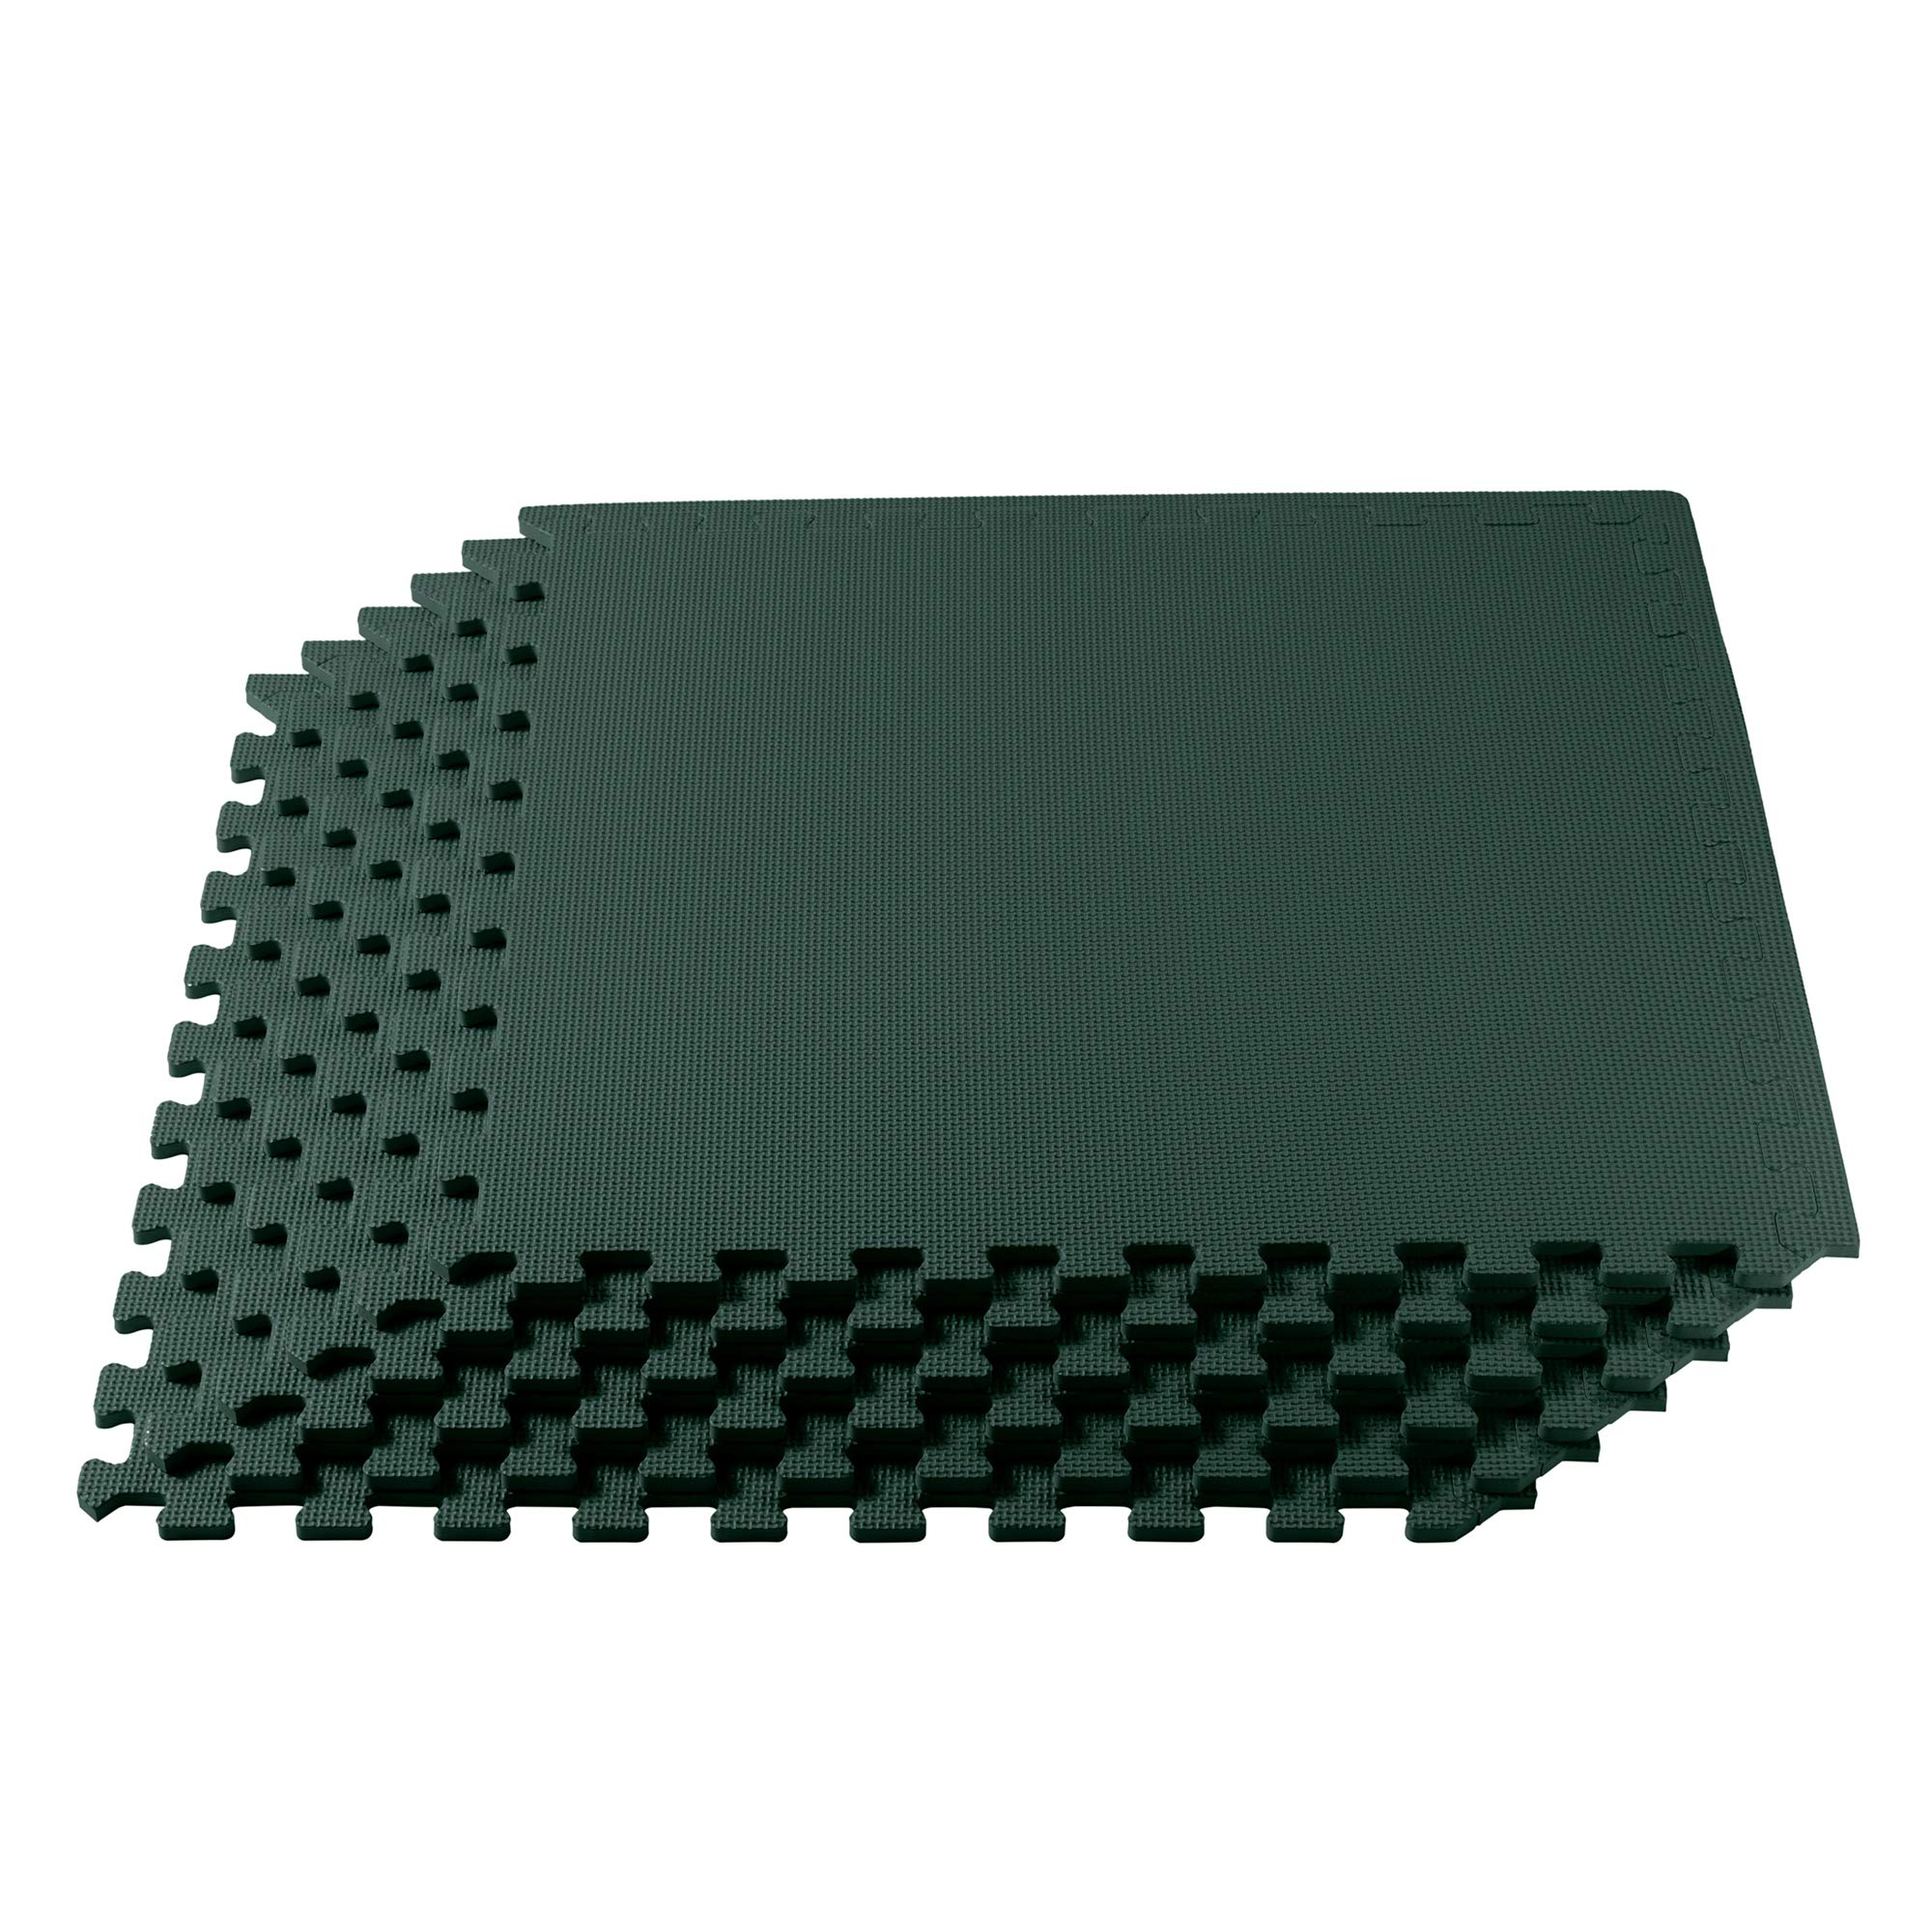 We Sell Mats Multipurpose Exercise Floor Mat with EVA Foam, Interlocking Tiles, Anti-Fatigue, for Home or Gym, 16 Square Feet (4 Tiles), 24 x 24 x 3/8 Inches, Hunter Green